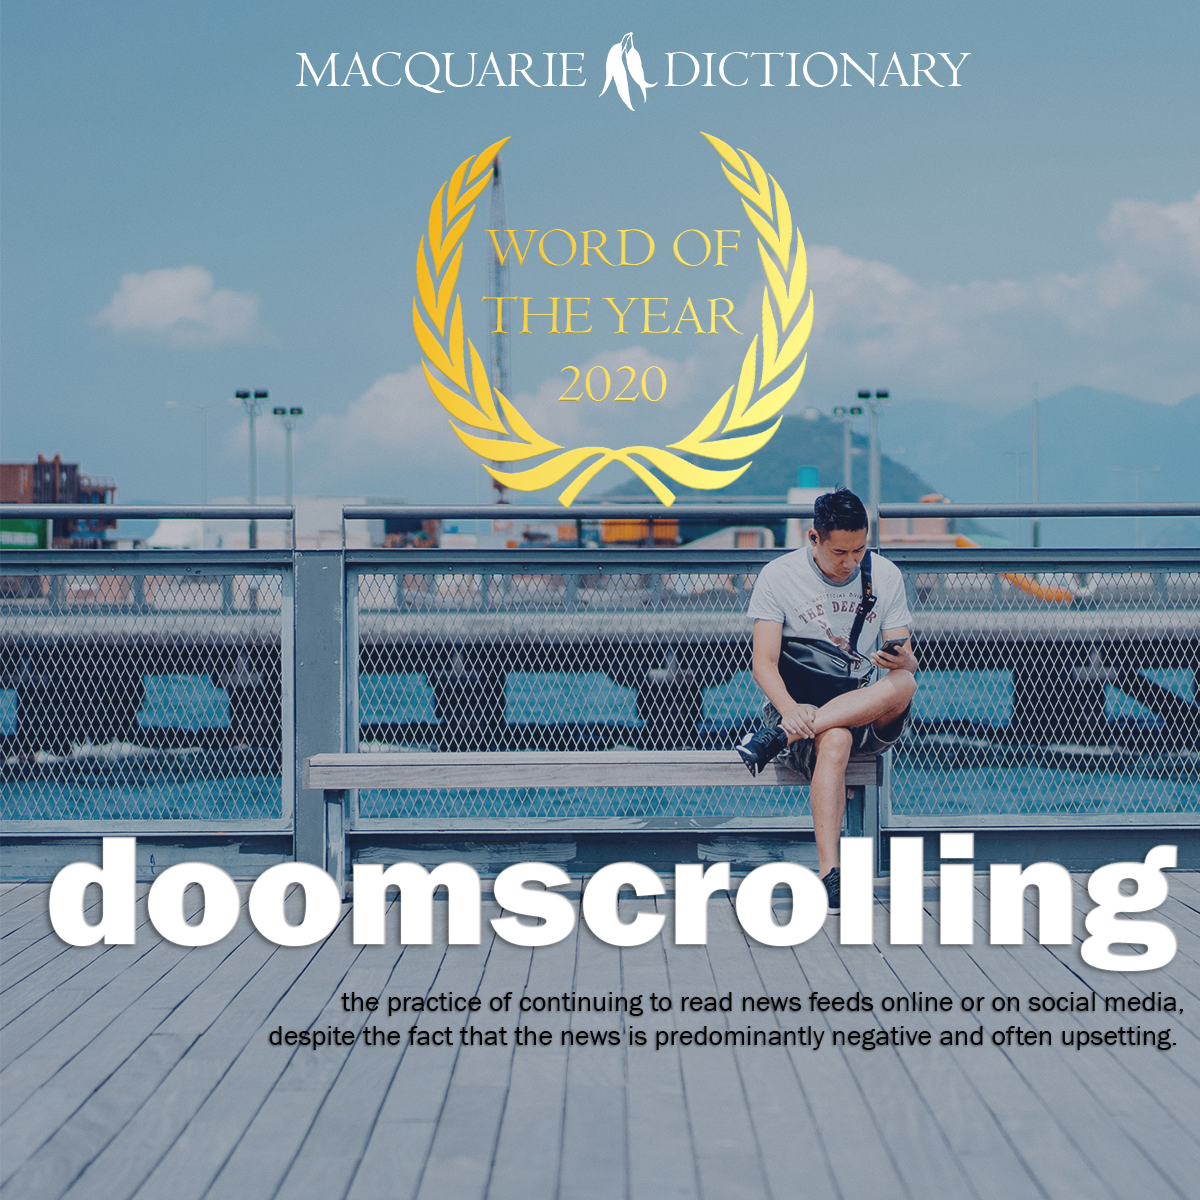 doomscrolling - the practice of continuing to read news feeds online or on social media, despite the fact that the news is predominantly negative and often upsetting.